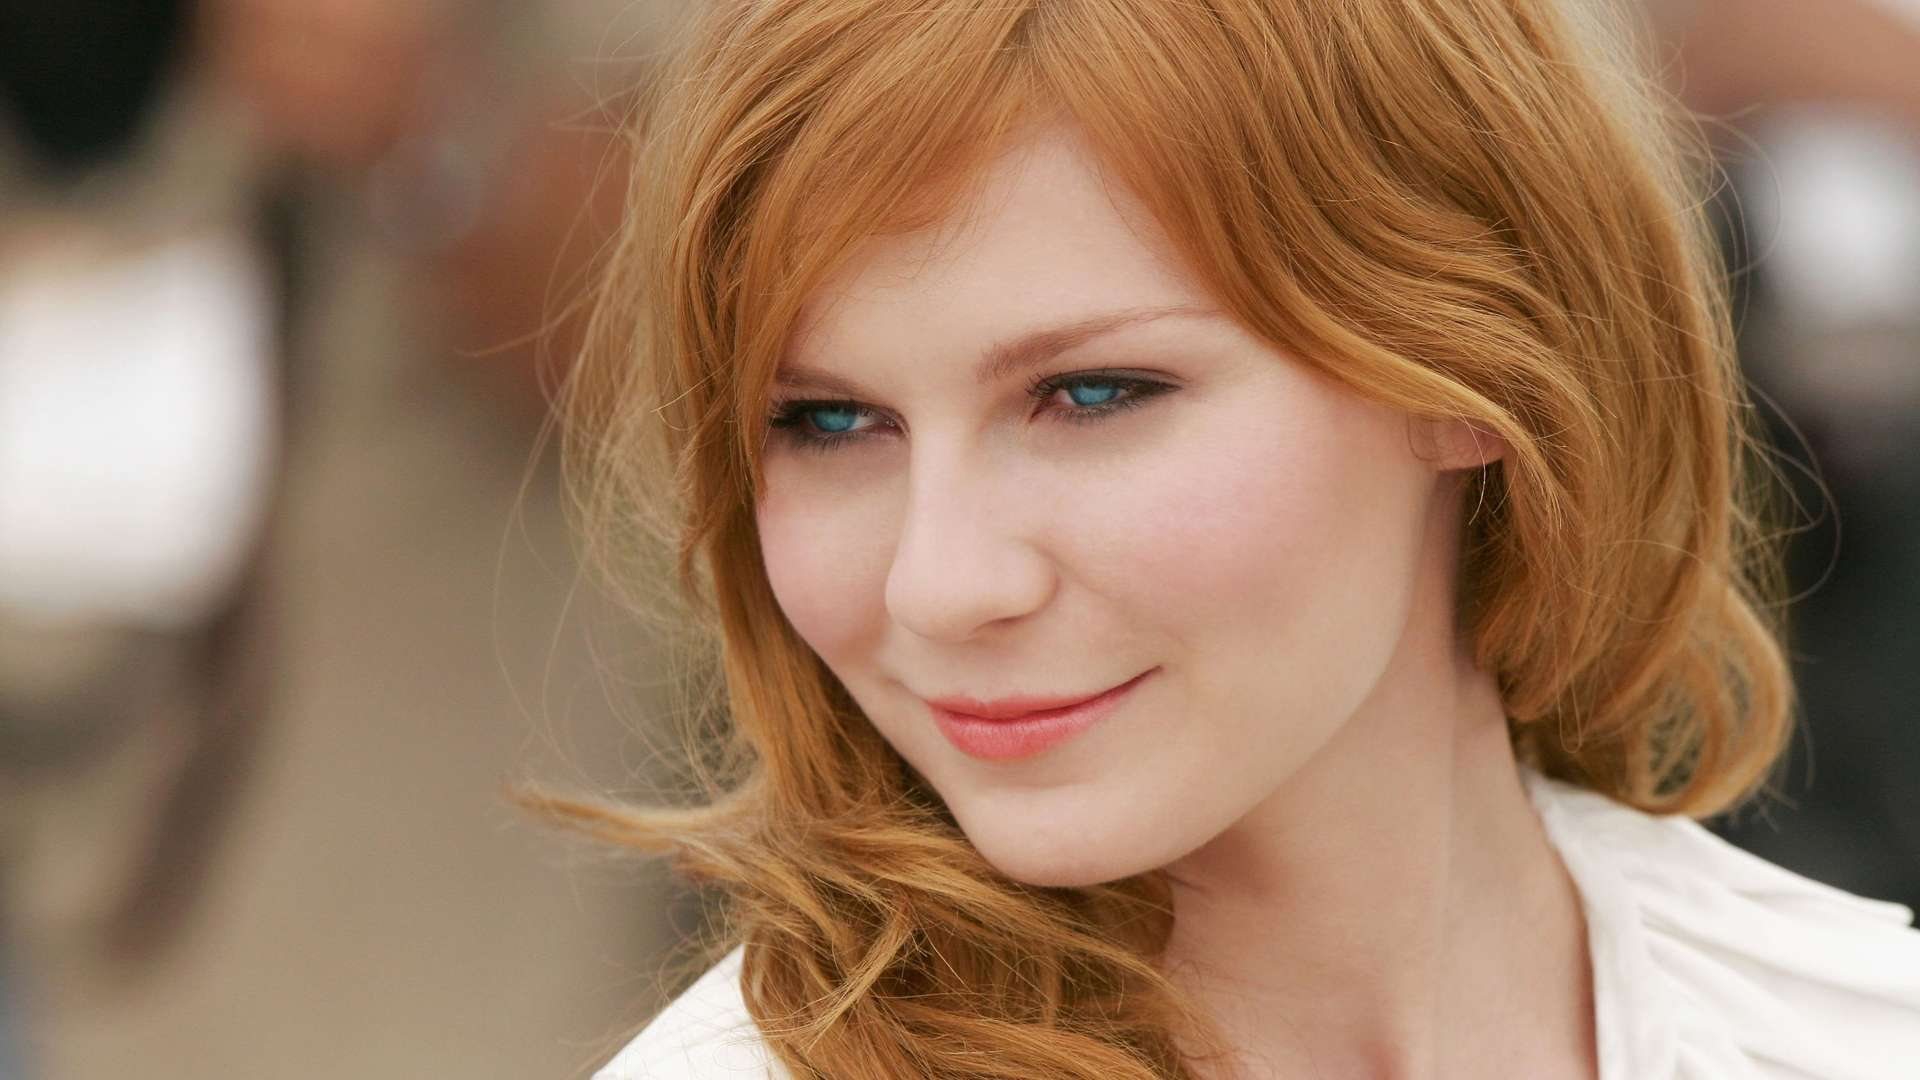 Kirsten-Dunst-Redhead-and-Blue-Eyes-http-www-fullhdwpp-com-people-kirsten-dunst-redhead-and-bl-wallpaper-wpc5806576